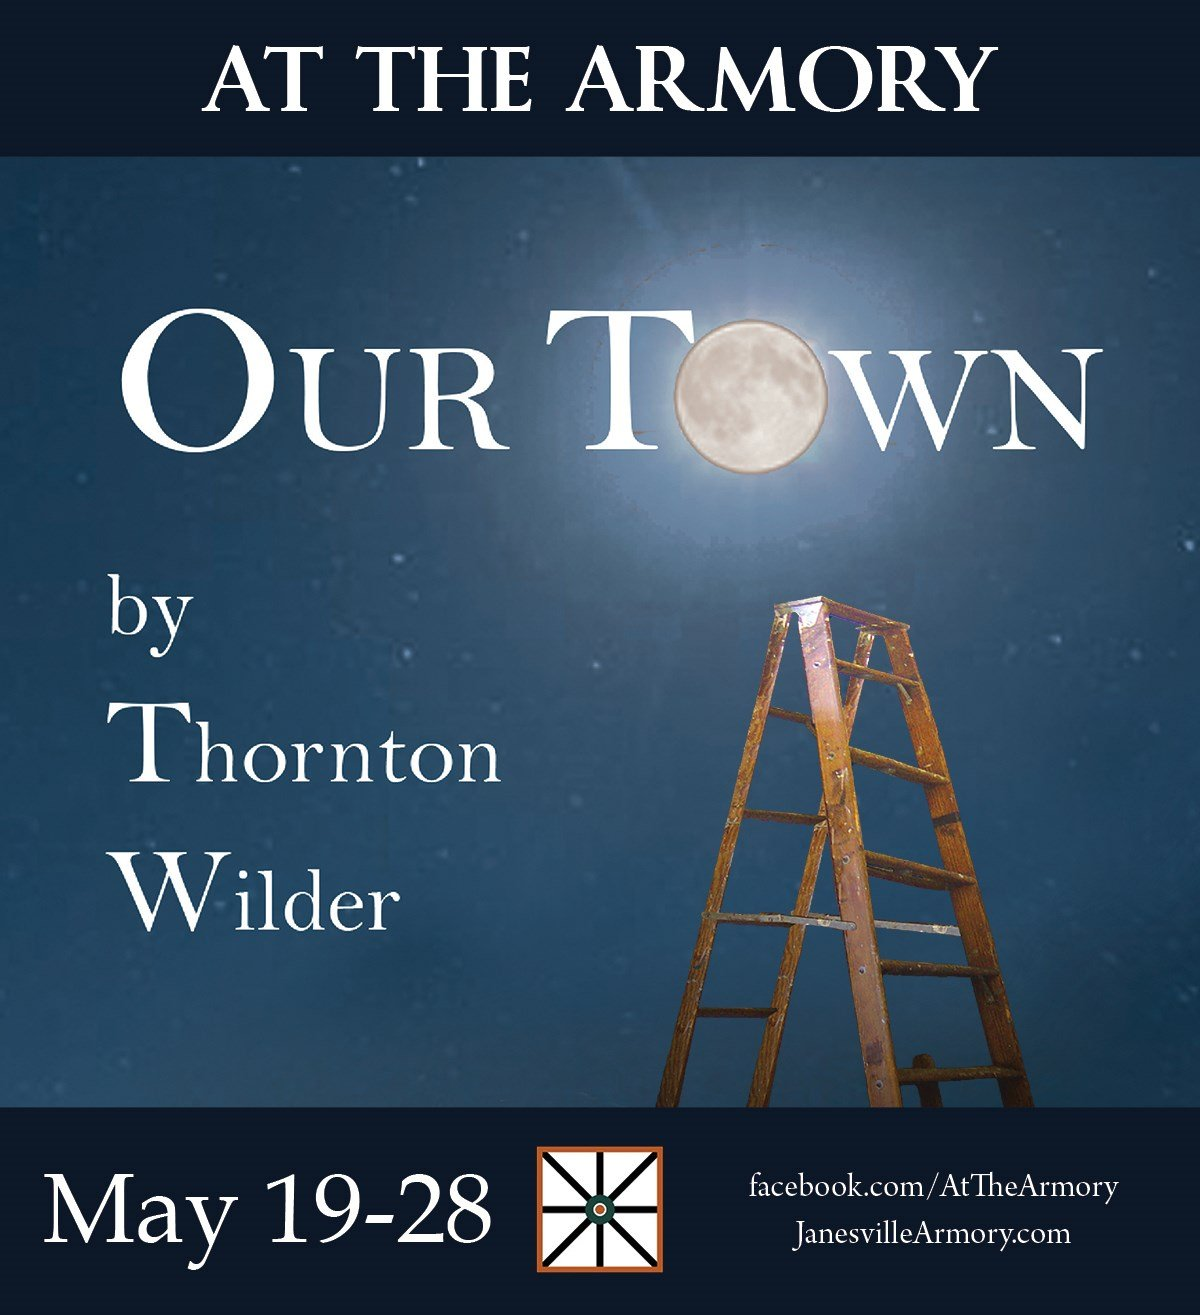 a look at the story of our town by thornton wilder And because alfred hitchcock was such an admirer of our town, the iconic director hired wilder to work on the script for his 1943 thriller shadow of a doubt with thornton wilder, english professor jackson r bryer wrote, wilder presents ordinary people who make the human race seem worth preserving.